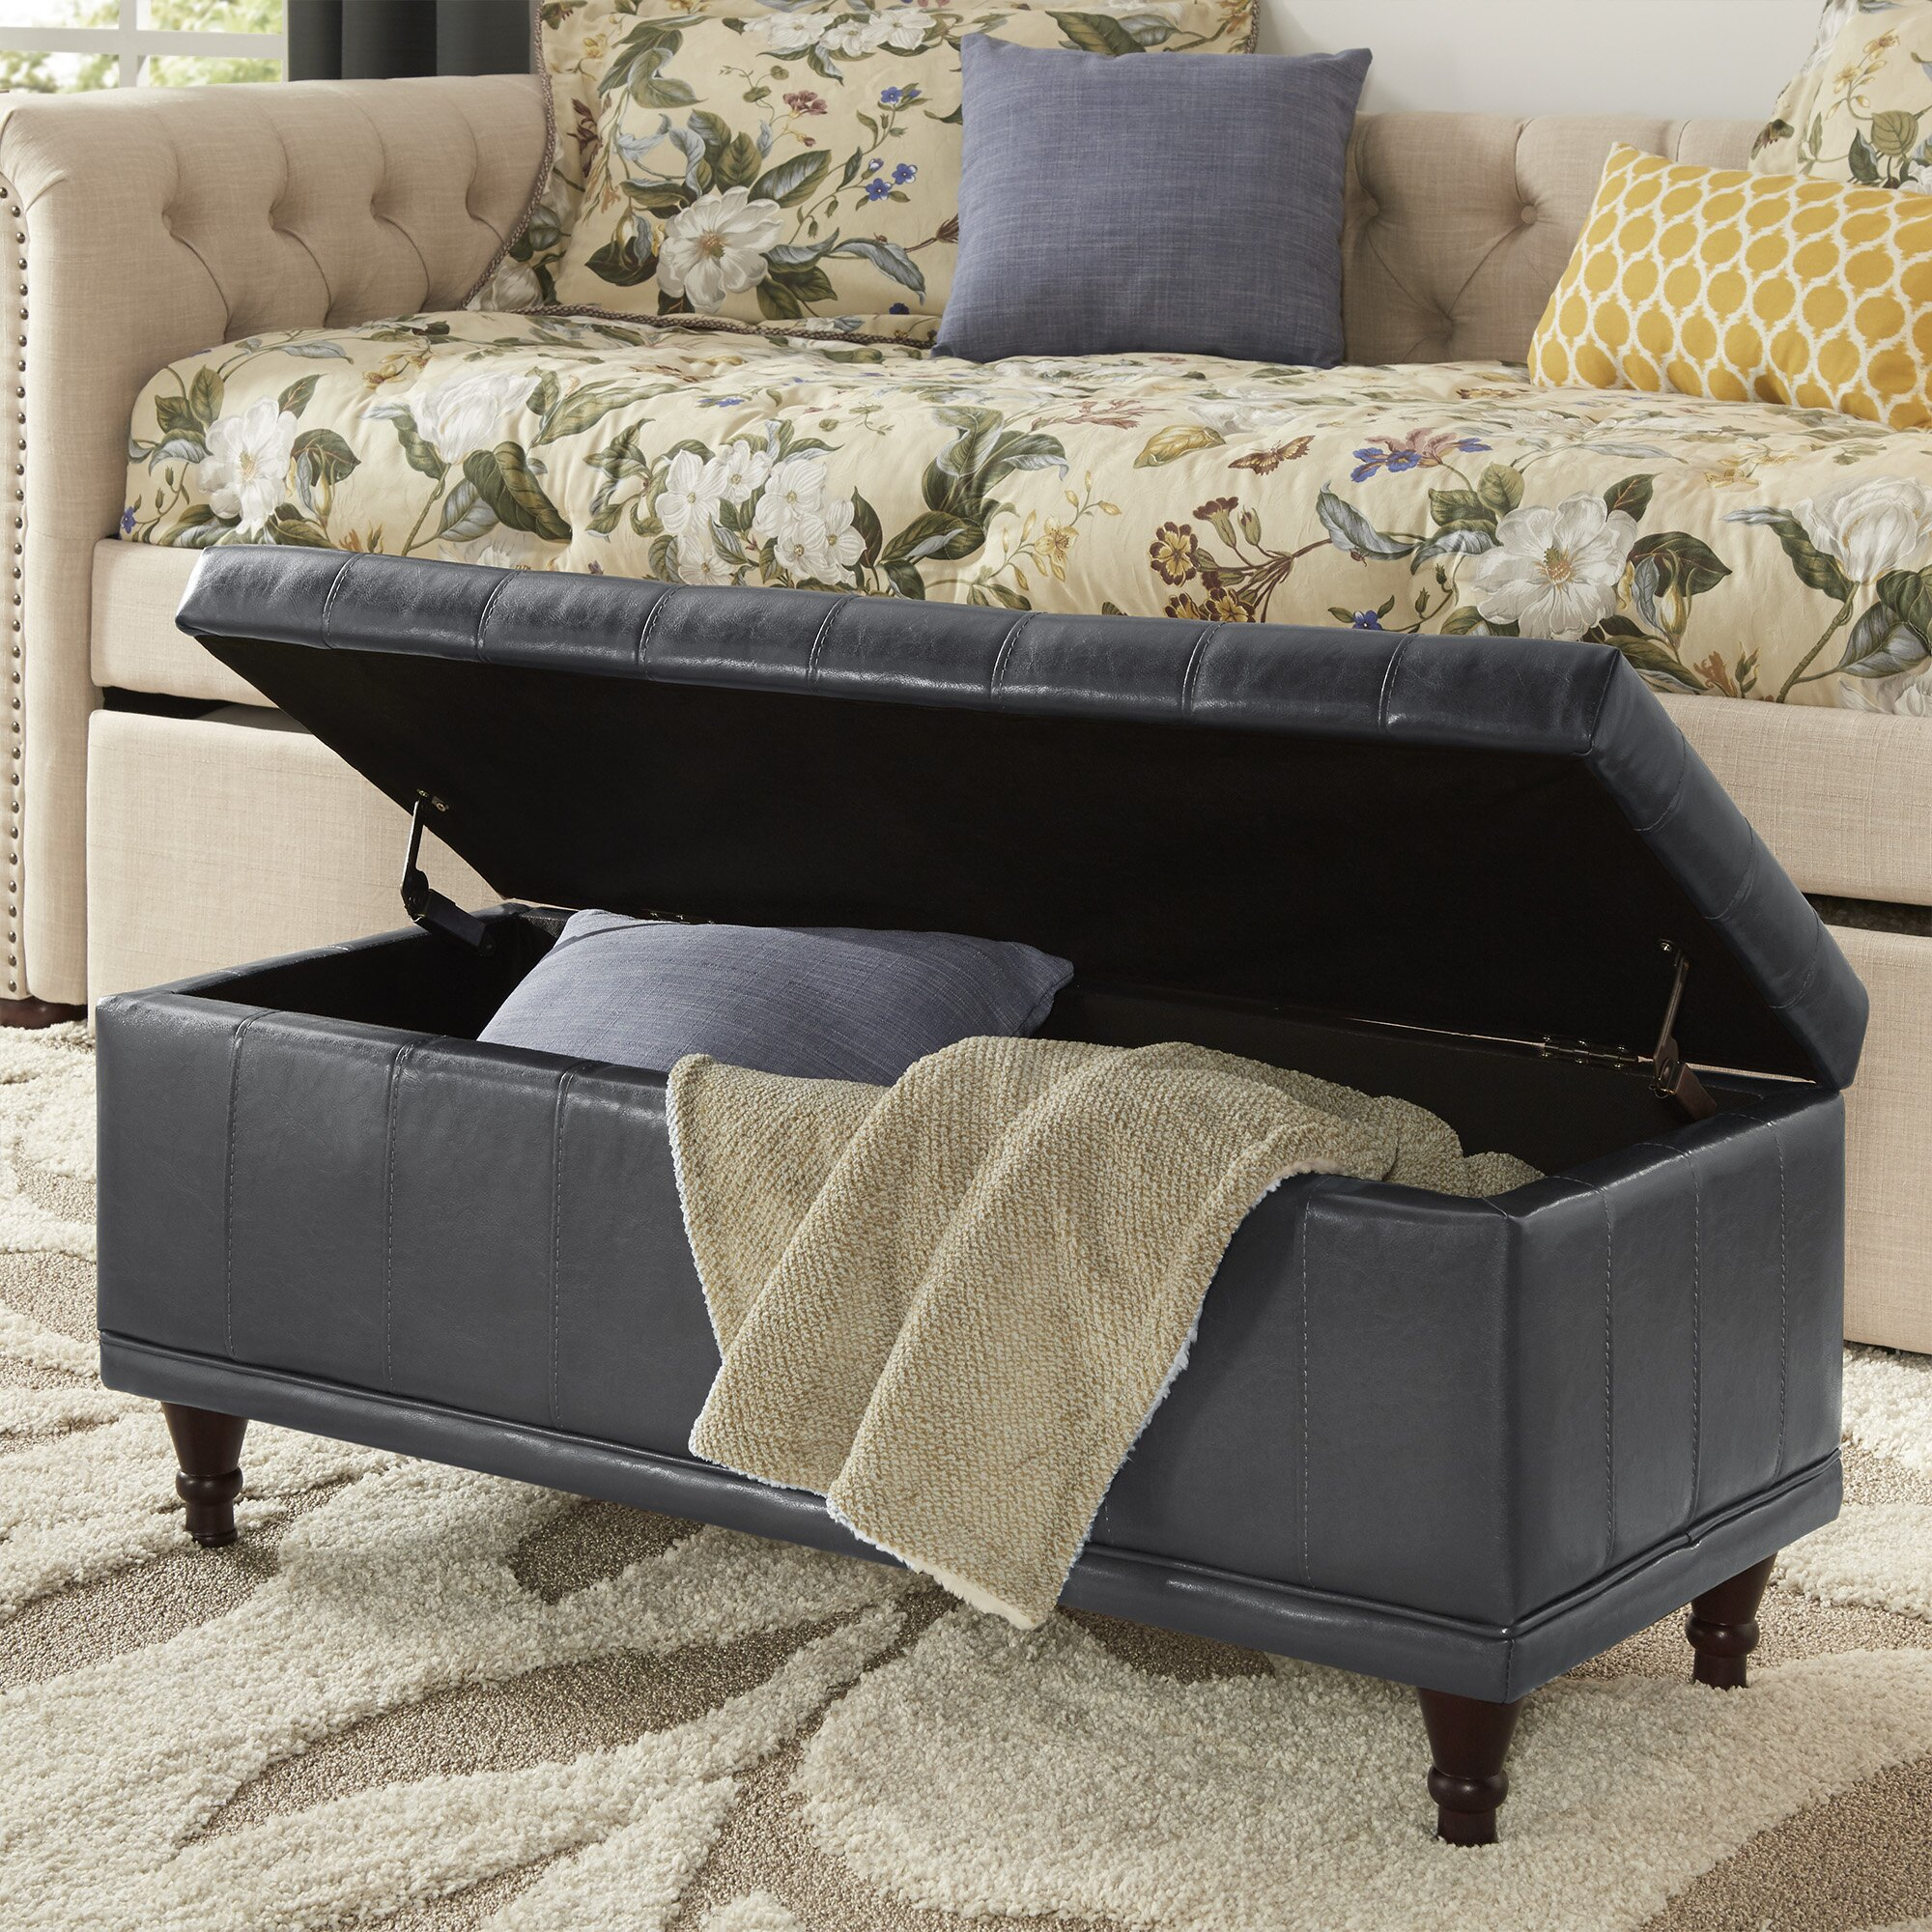 Three Posts Southampton Leather Storage Bedroom Bench Reviews Wayfair